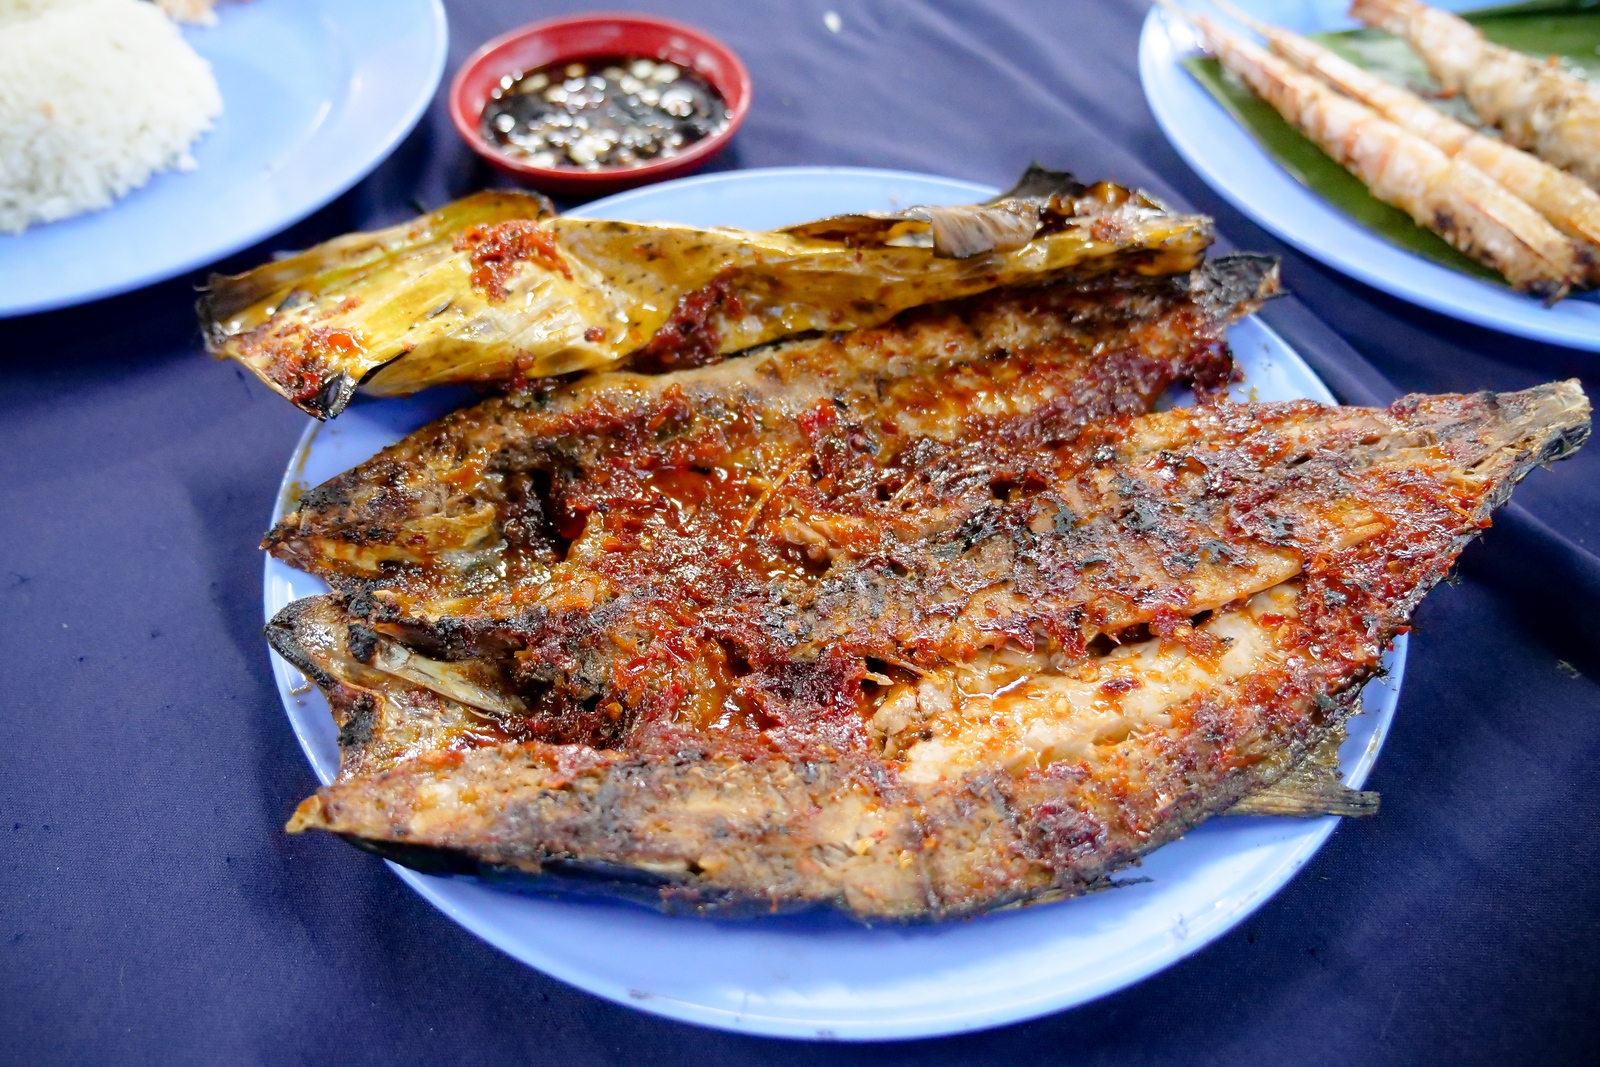 Ikan Bakar is the most popular style to have your fish cooked here, and like the name, its the dish for which this restaurant is known